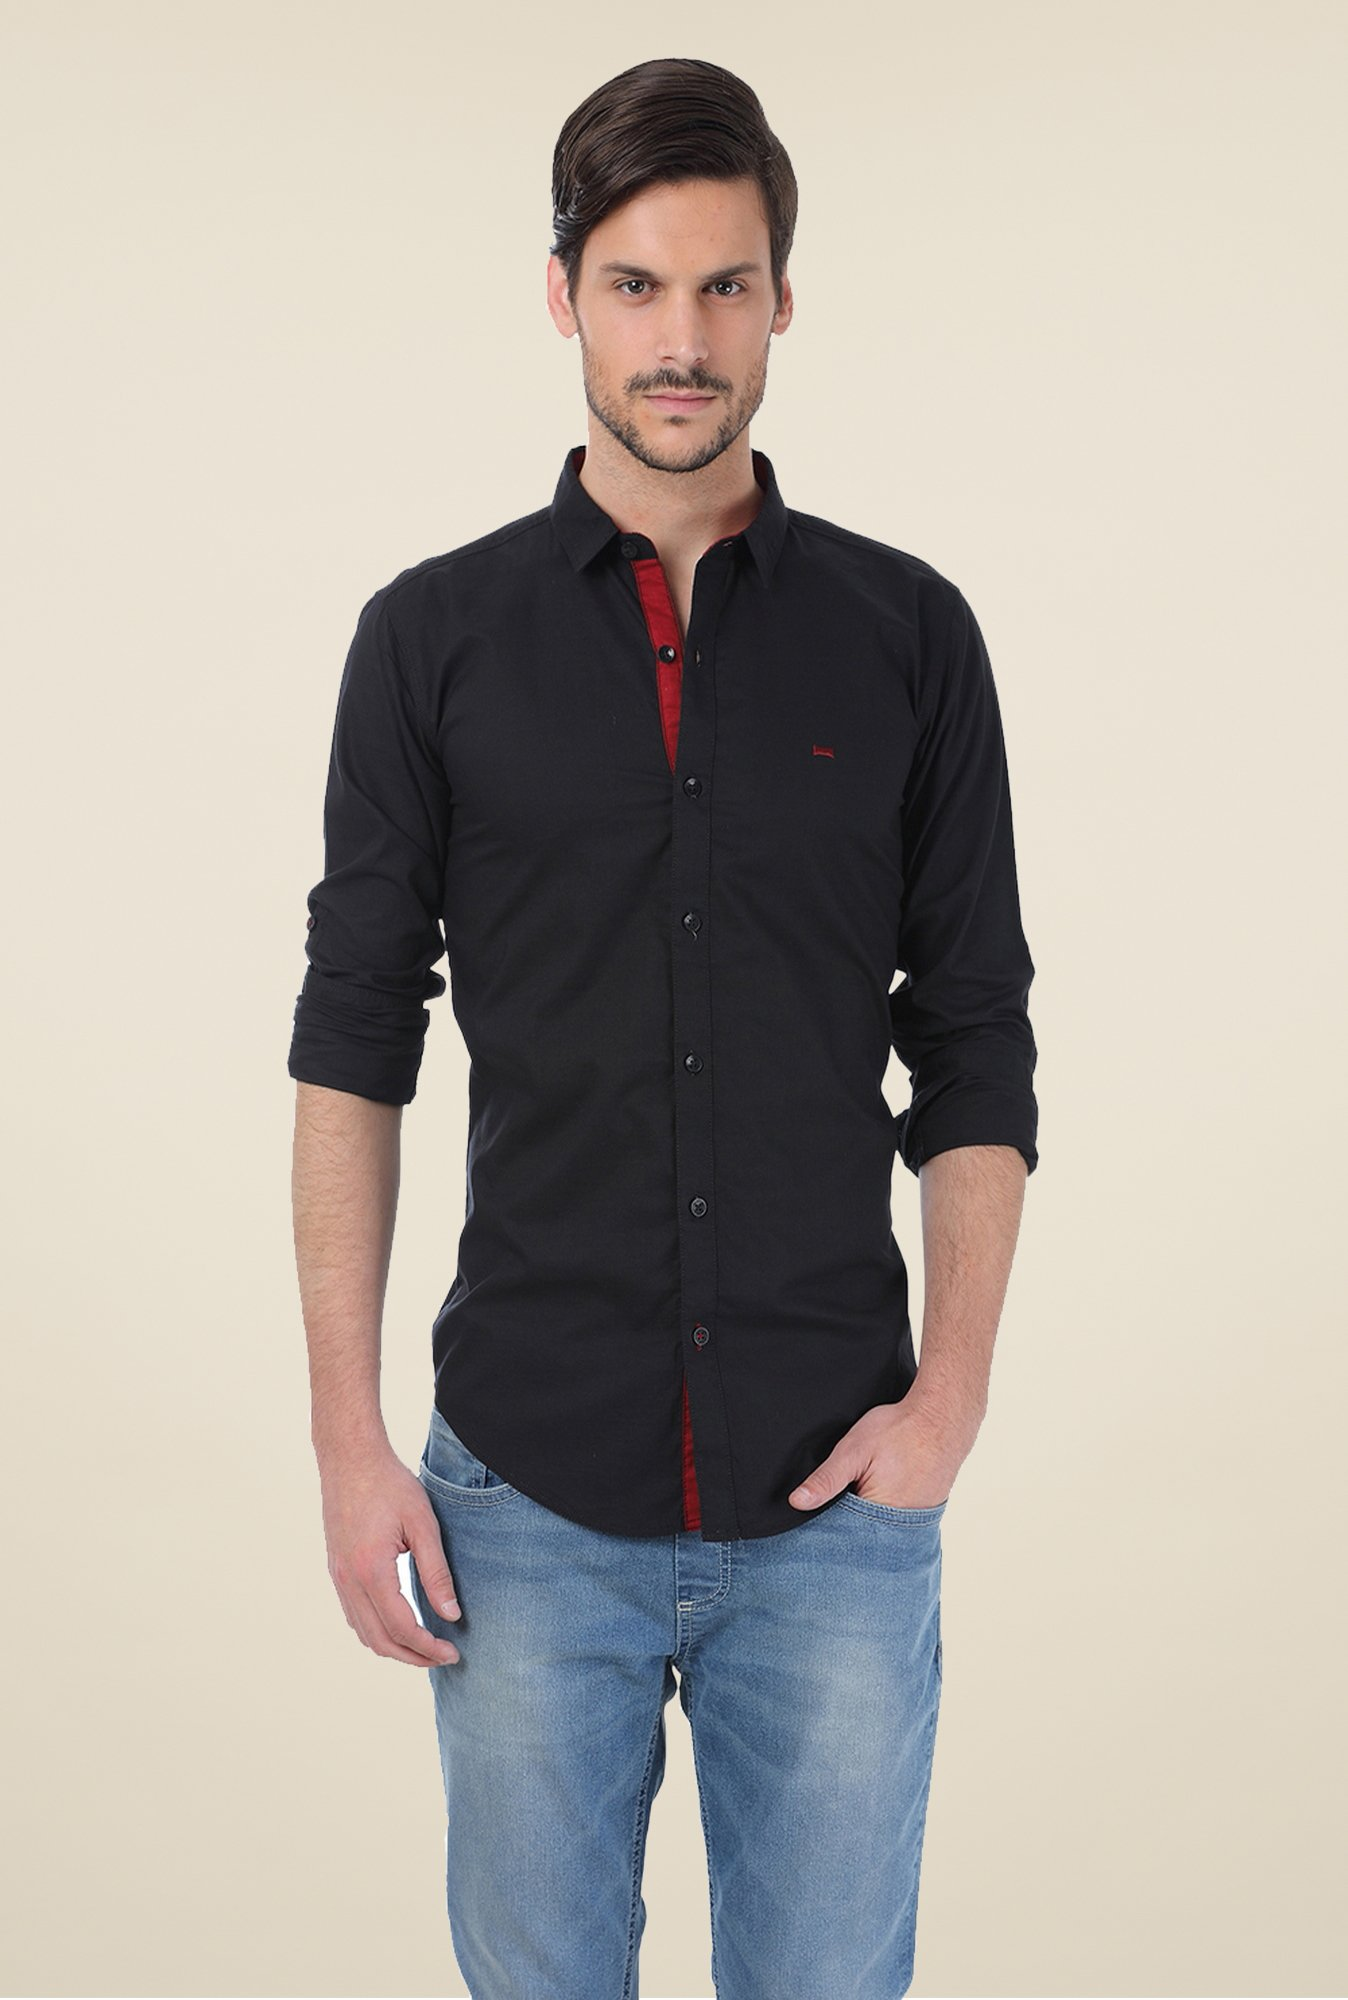 Basics Black Solid Shirt